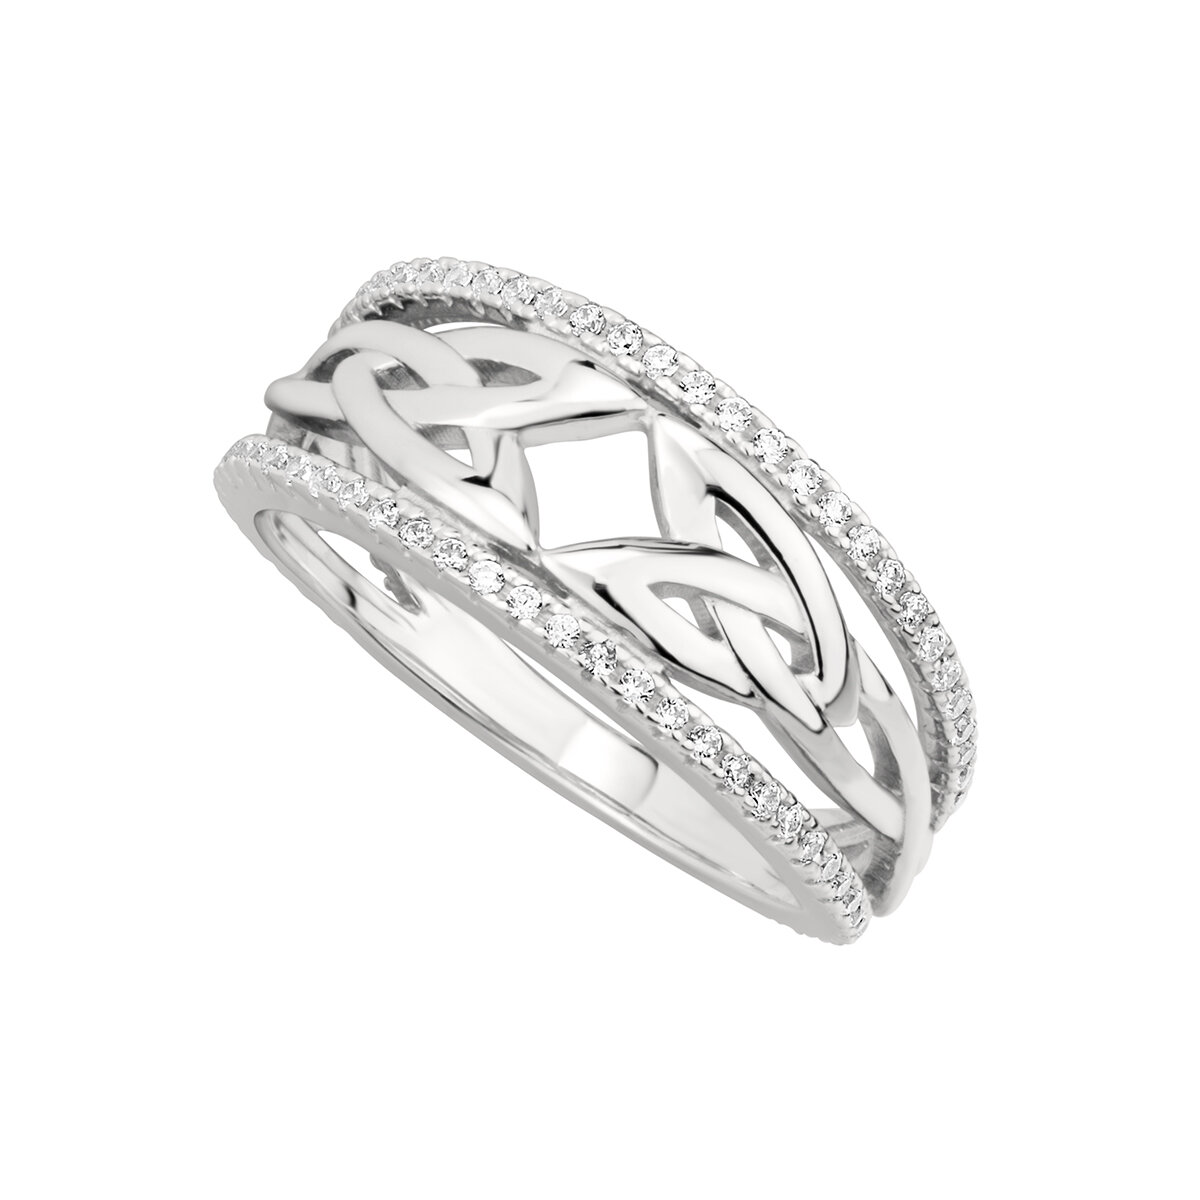 cubic zirconia sterling silver trinity knot ring s21068 from Solvar